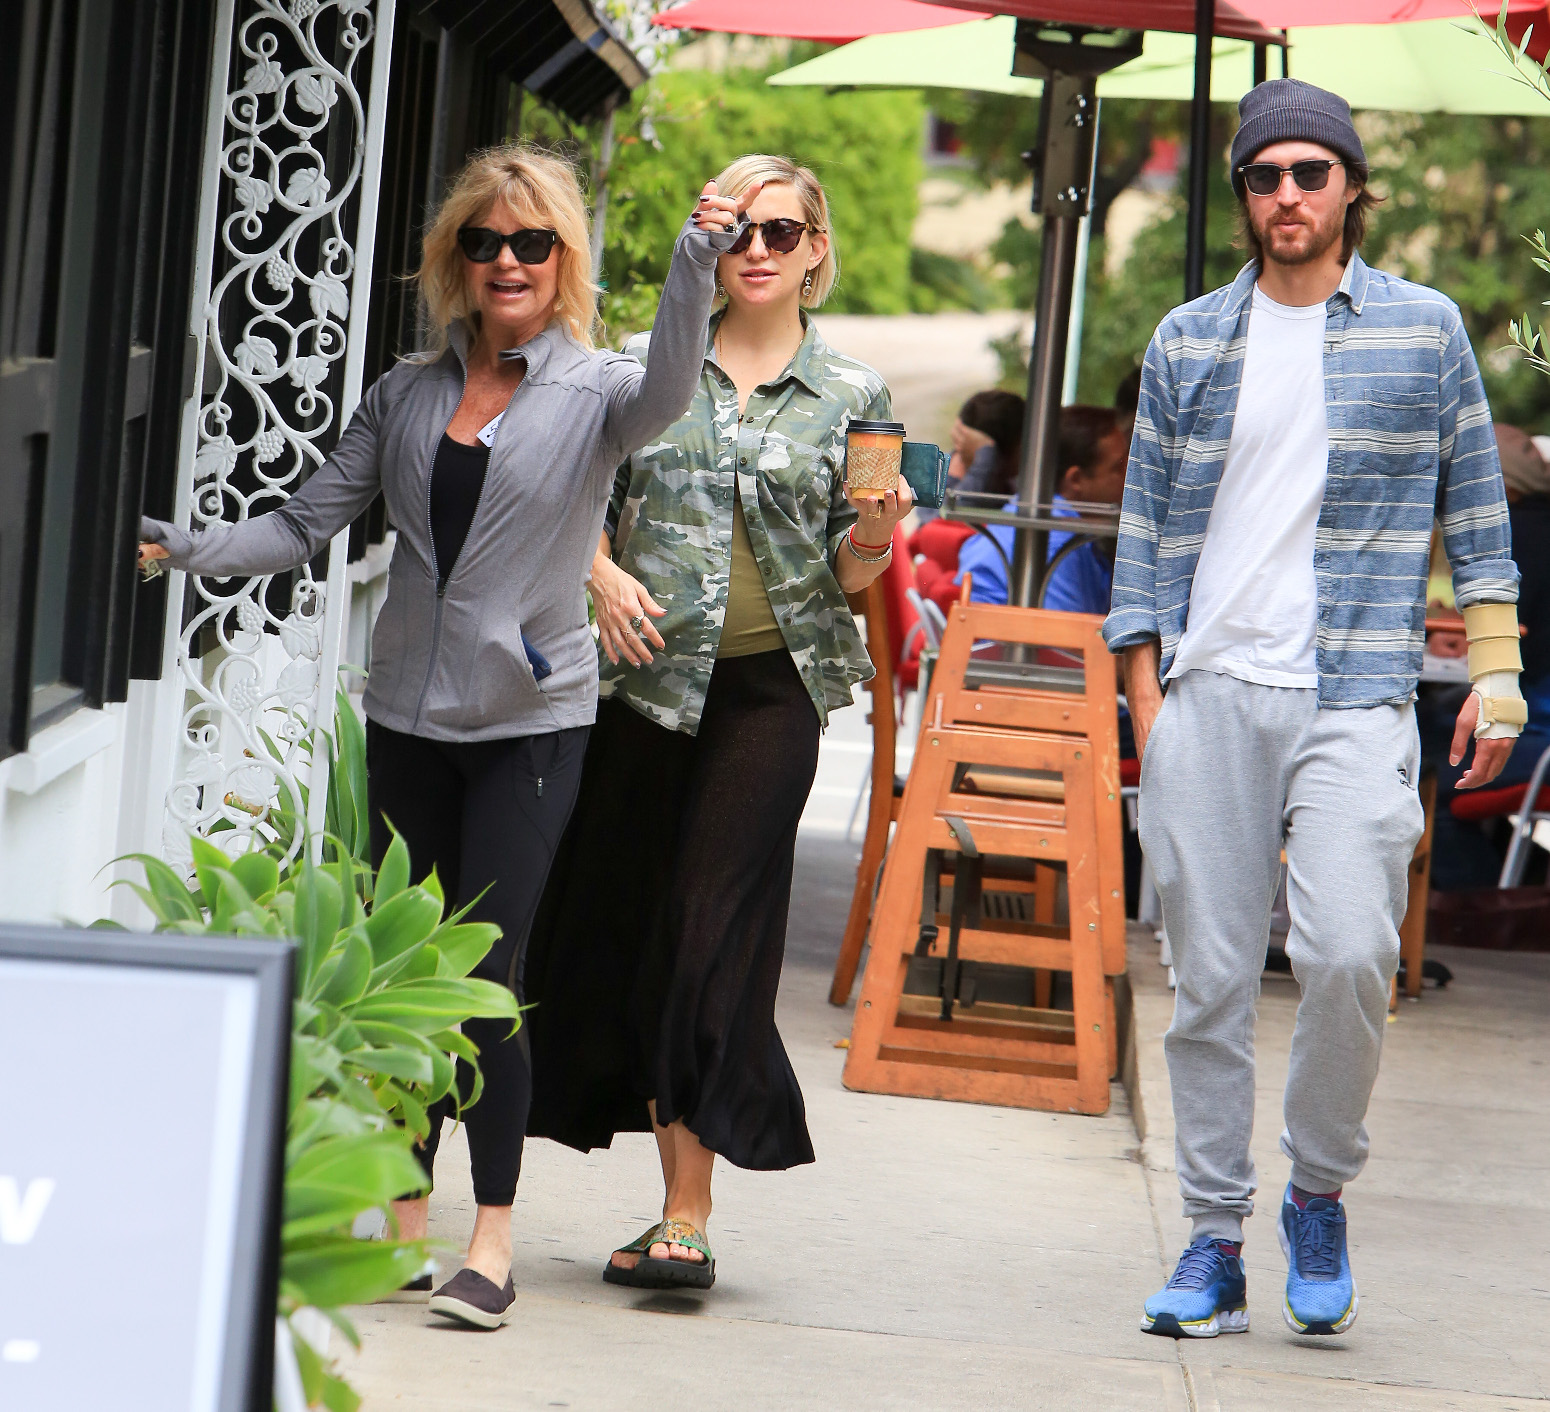 Kate Hudson and Goldie Hawn spotted out and about in Los Angeles <P> Pictured: Goldie Hawn, Daniel Fujikaw and Kate Hudson <B>Ref: SPL1701034  210518  </B><BR/> Picture by: BG004/Bauer Griffin LLC<BR/> </P><P>